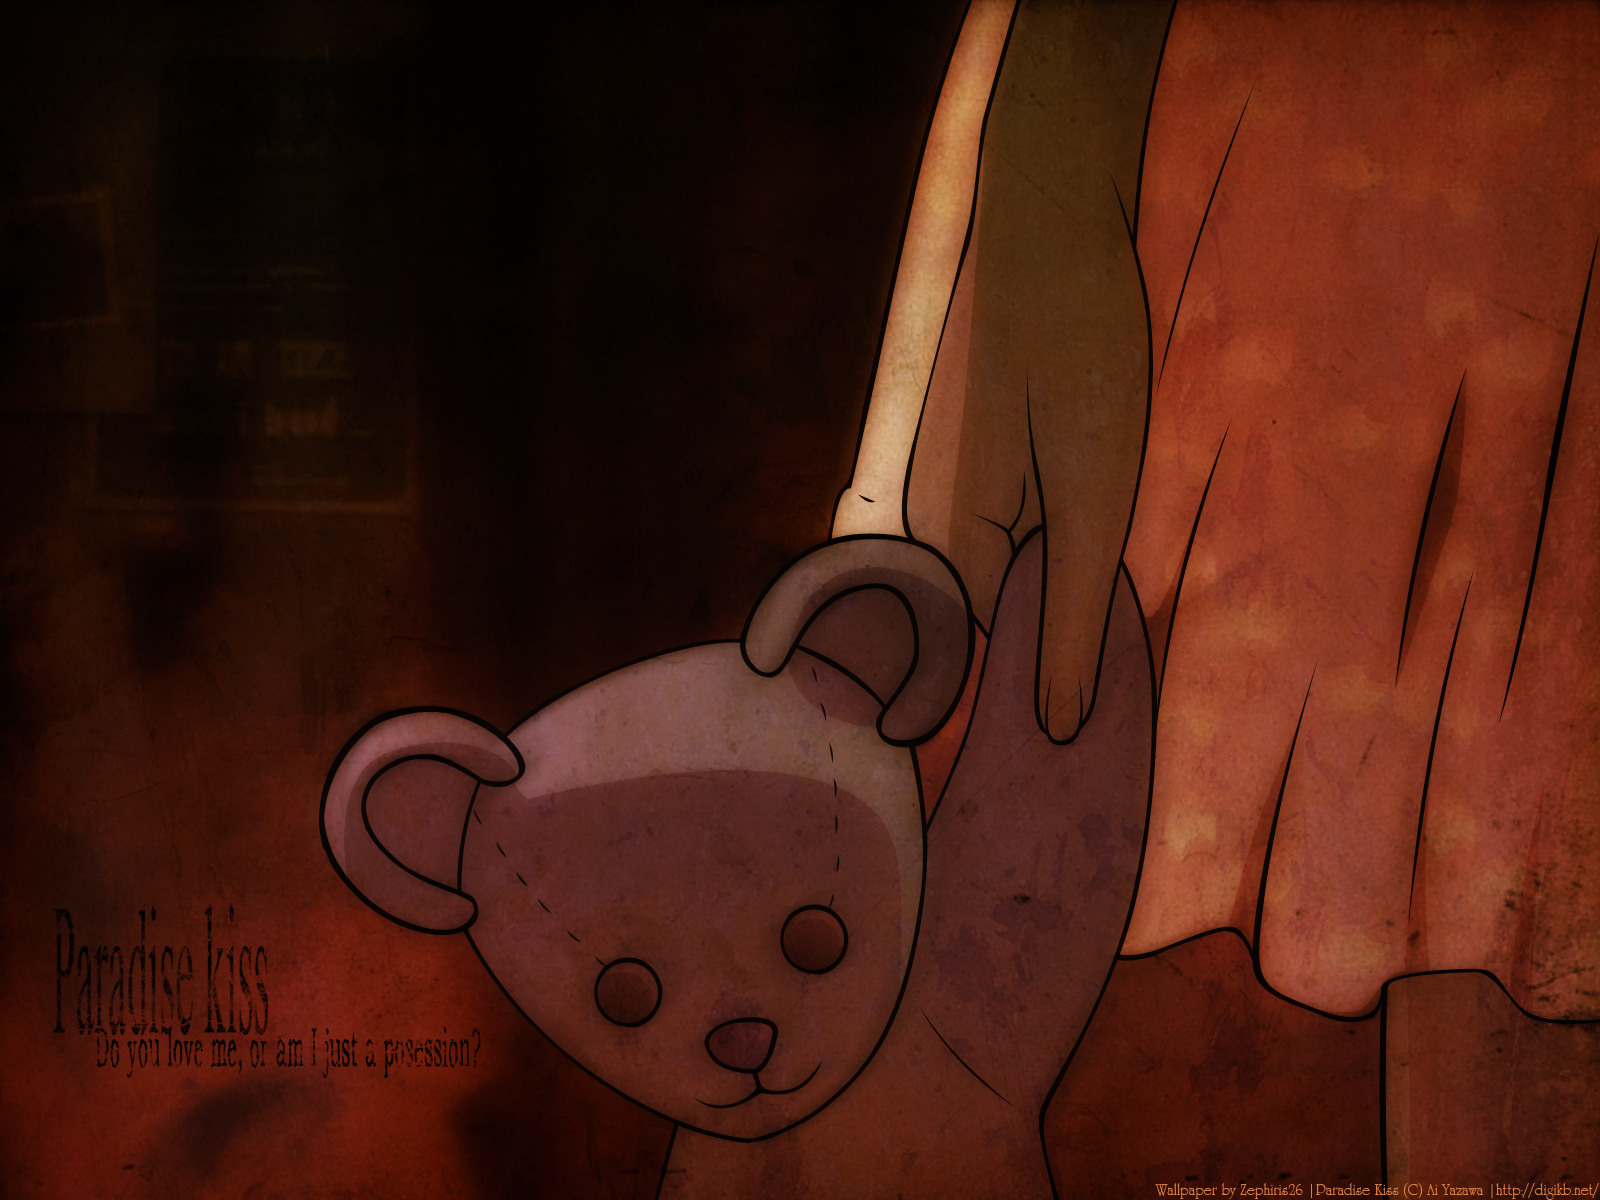 paradise_kiss teddy_bear watermark